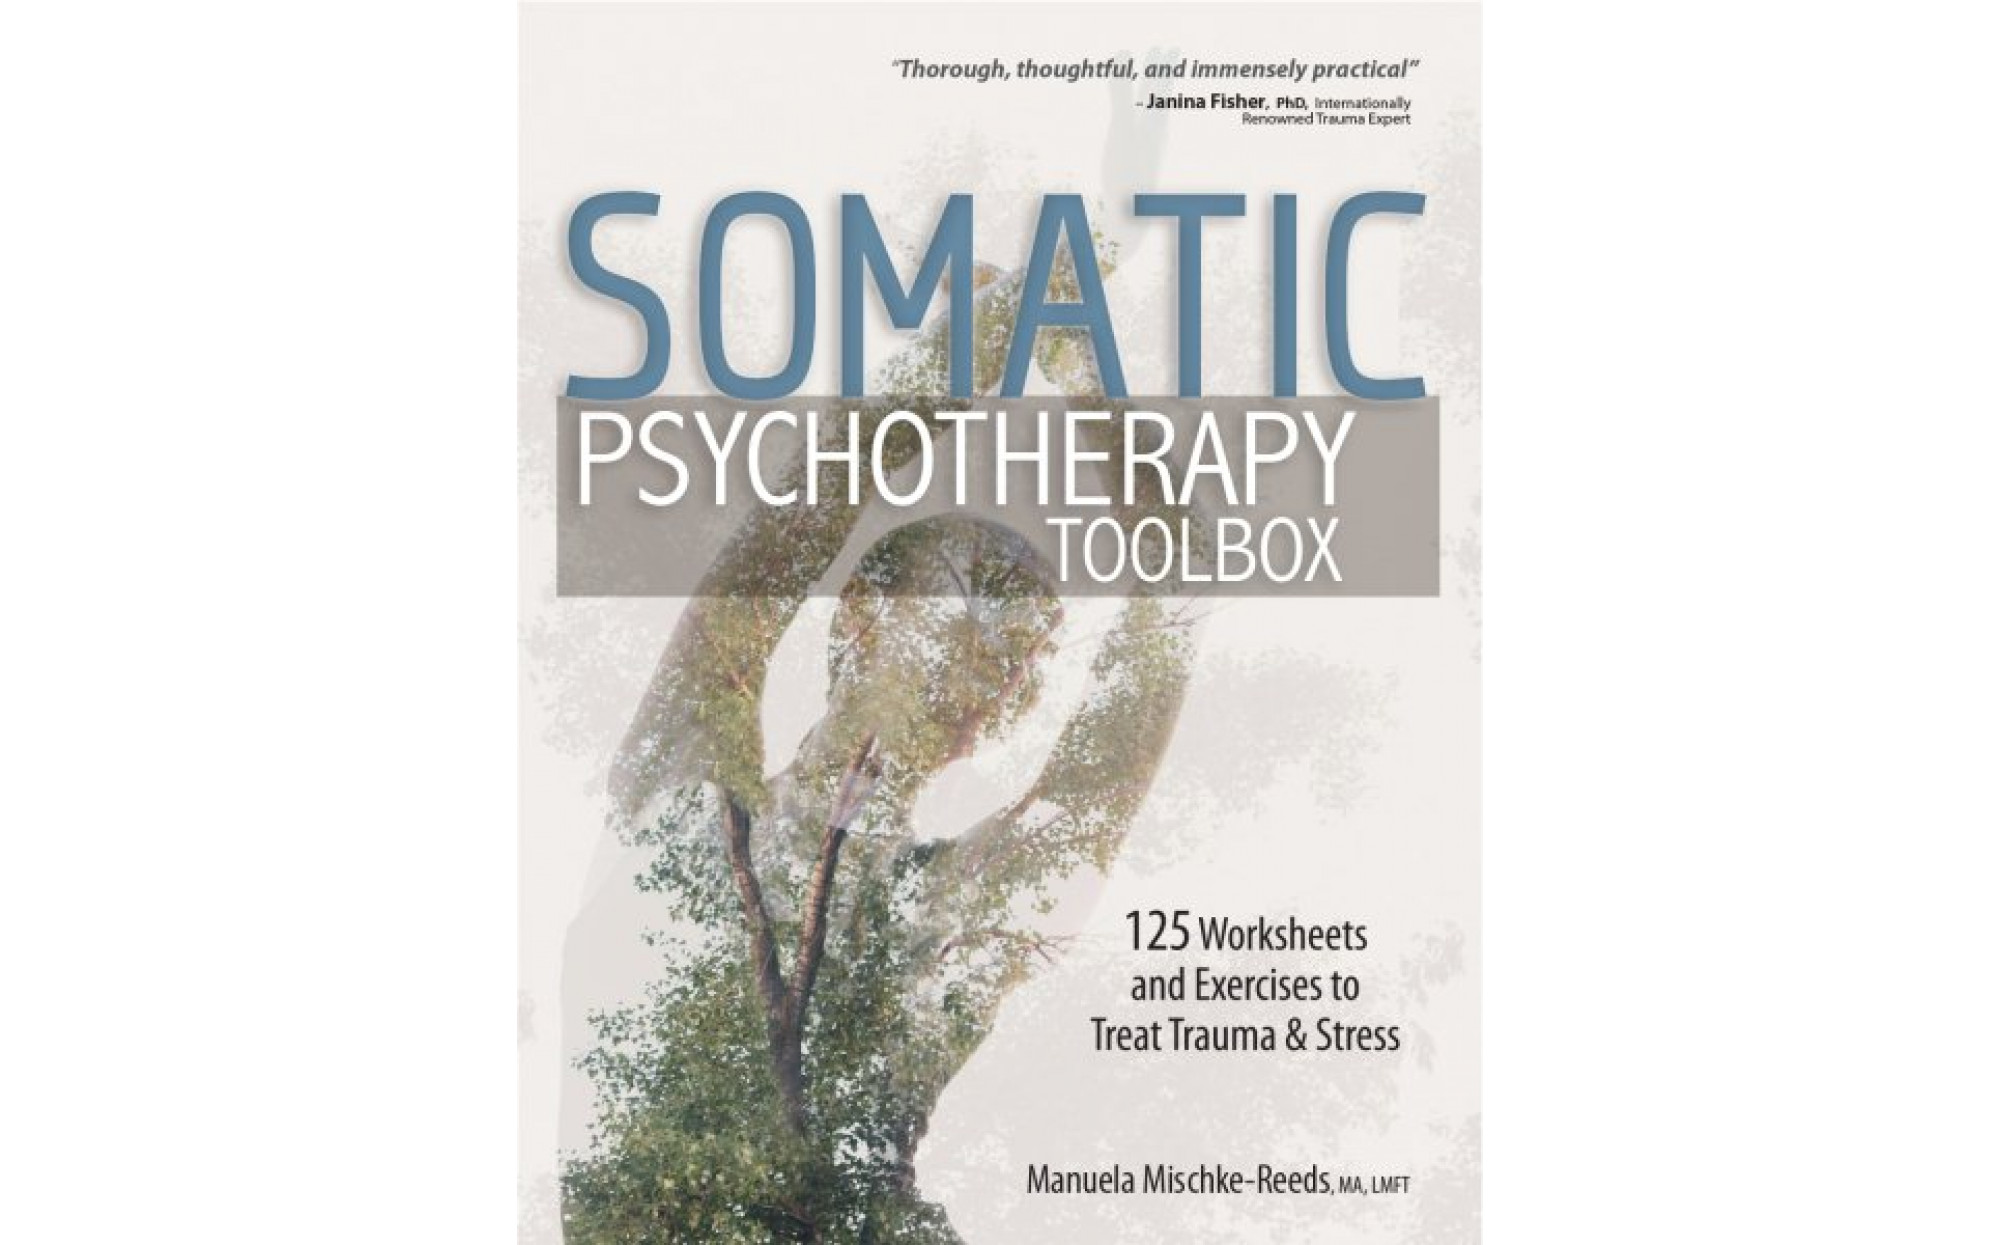 Somatic Psychotherapy Toolbox 125 Worksheets And